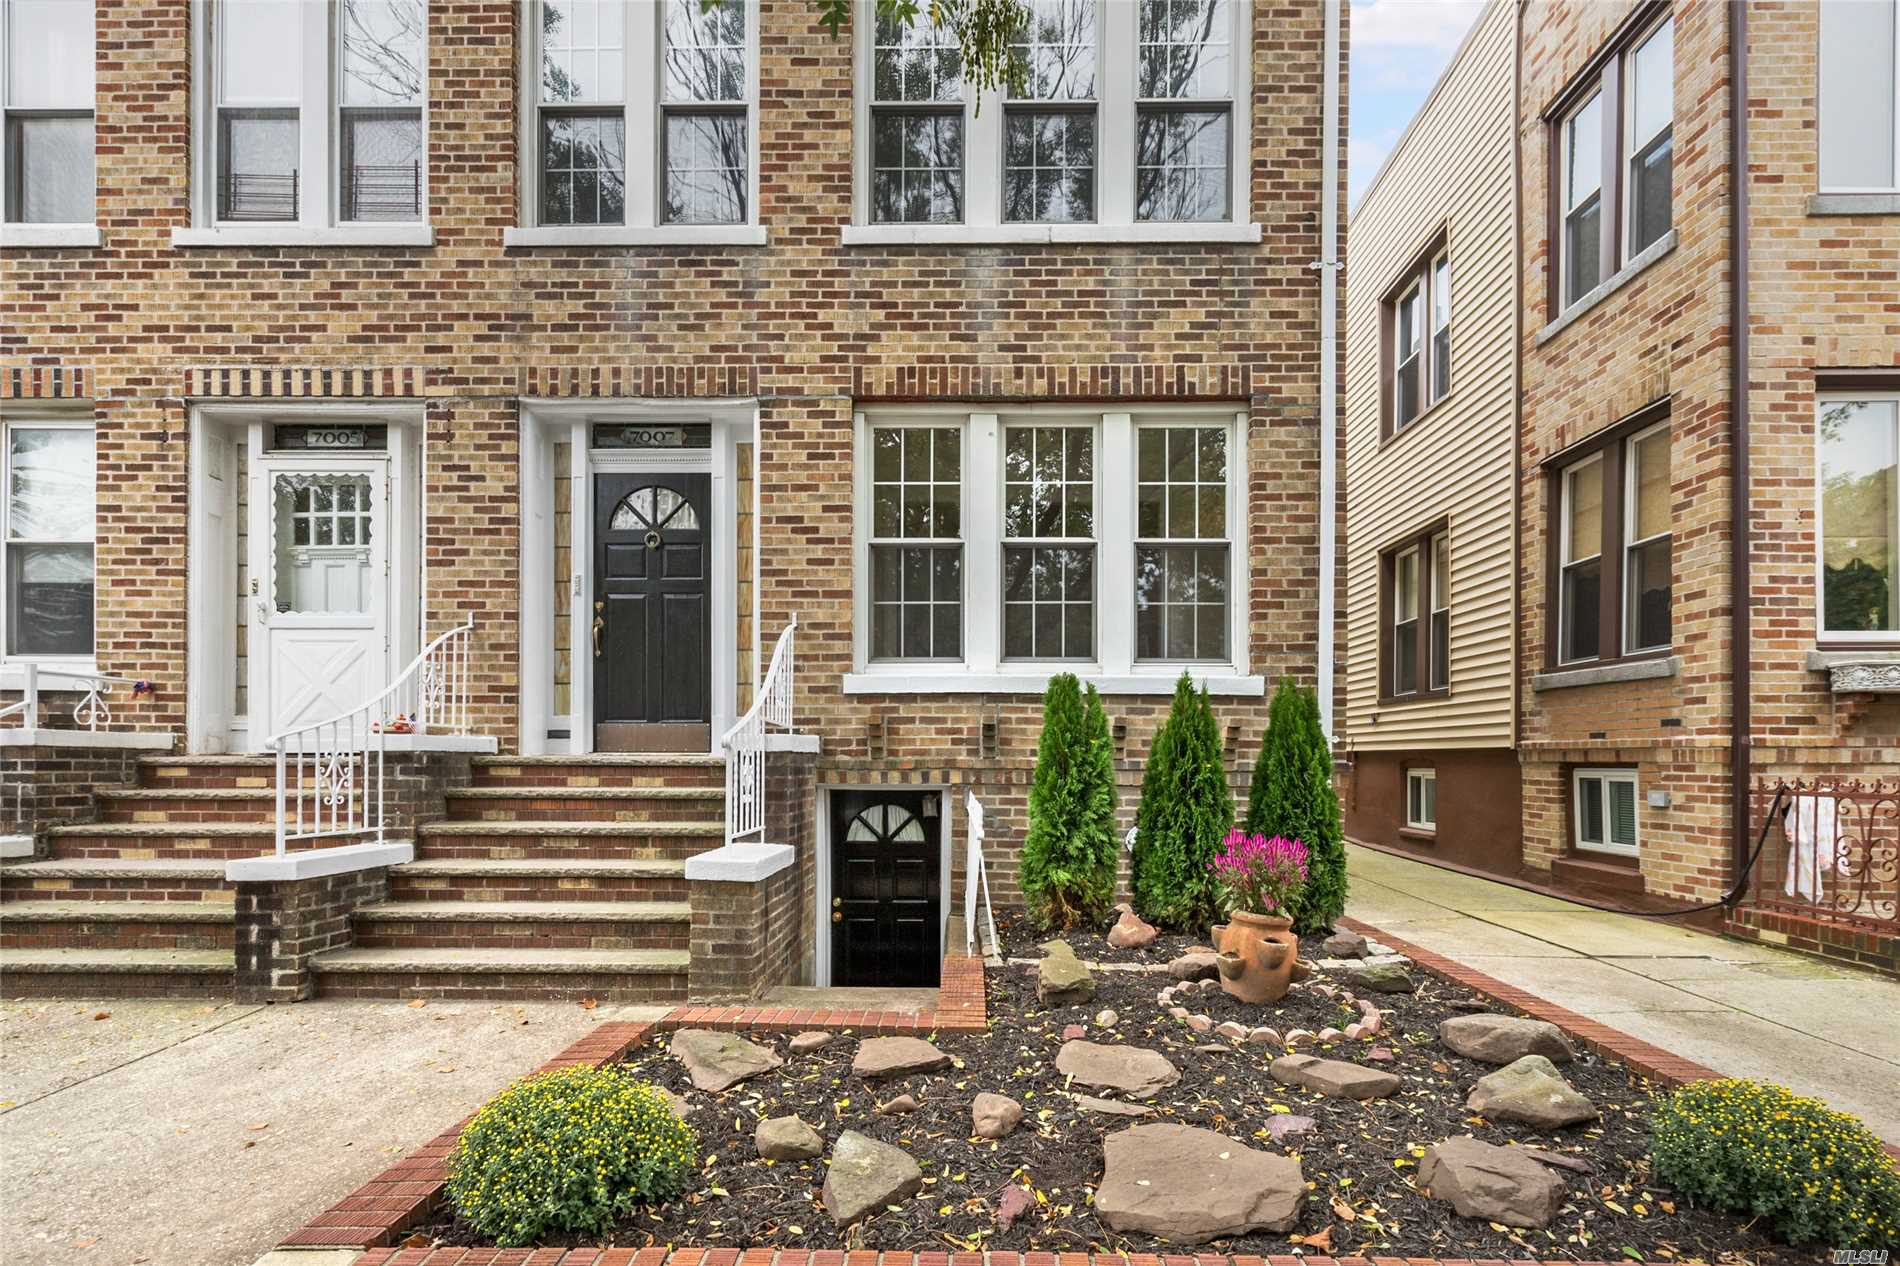 Two Family Semi-Detached Brick House On Colonial Road In Bay Ridge, Brooklyn. Six Rooms Over Five Rooms, Hardwood Floors Throughout, Partially Finished Full Basement, Two-Car Garage And Shared Driveway. Near Public Transportation, Ferries, Express Buses And Major Roadways. Delivered Vacant.